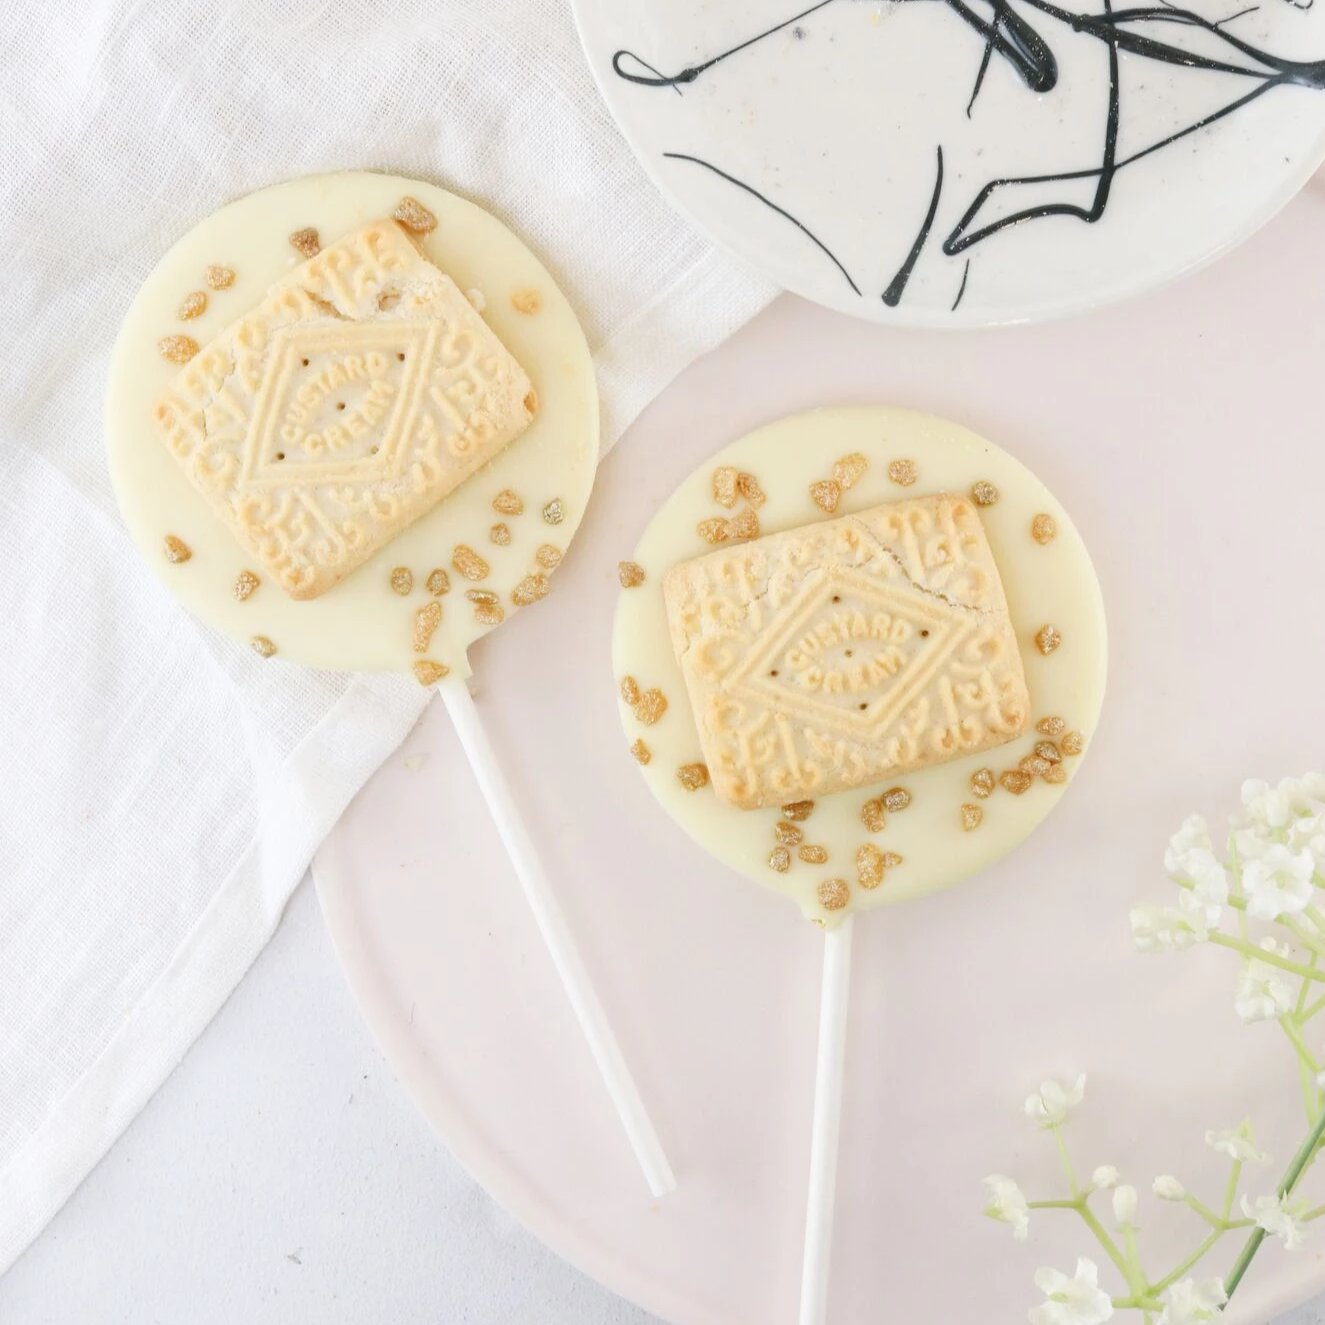 White Chocolate Custard Cream Lollipop - The Home Of Fully Loaded boozy Chocolate. Large Slabbs of boozy chocolate with a variety of alcoholic ganaches; gin, rum, whisky, amaretto, baileys and toppings. Available as monthly subscriptions.